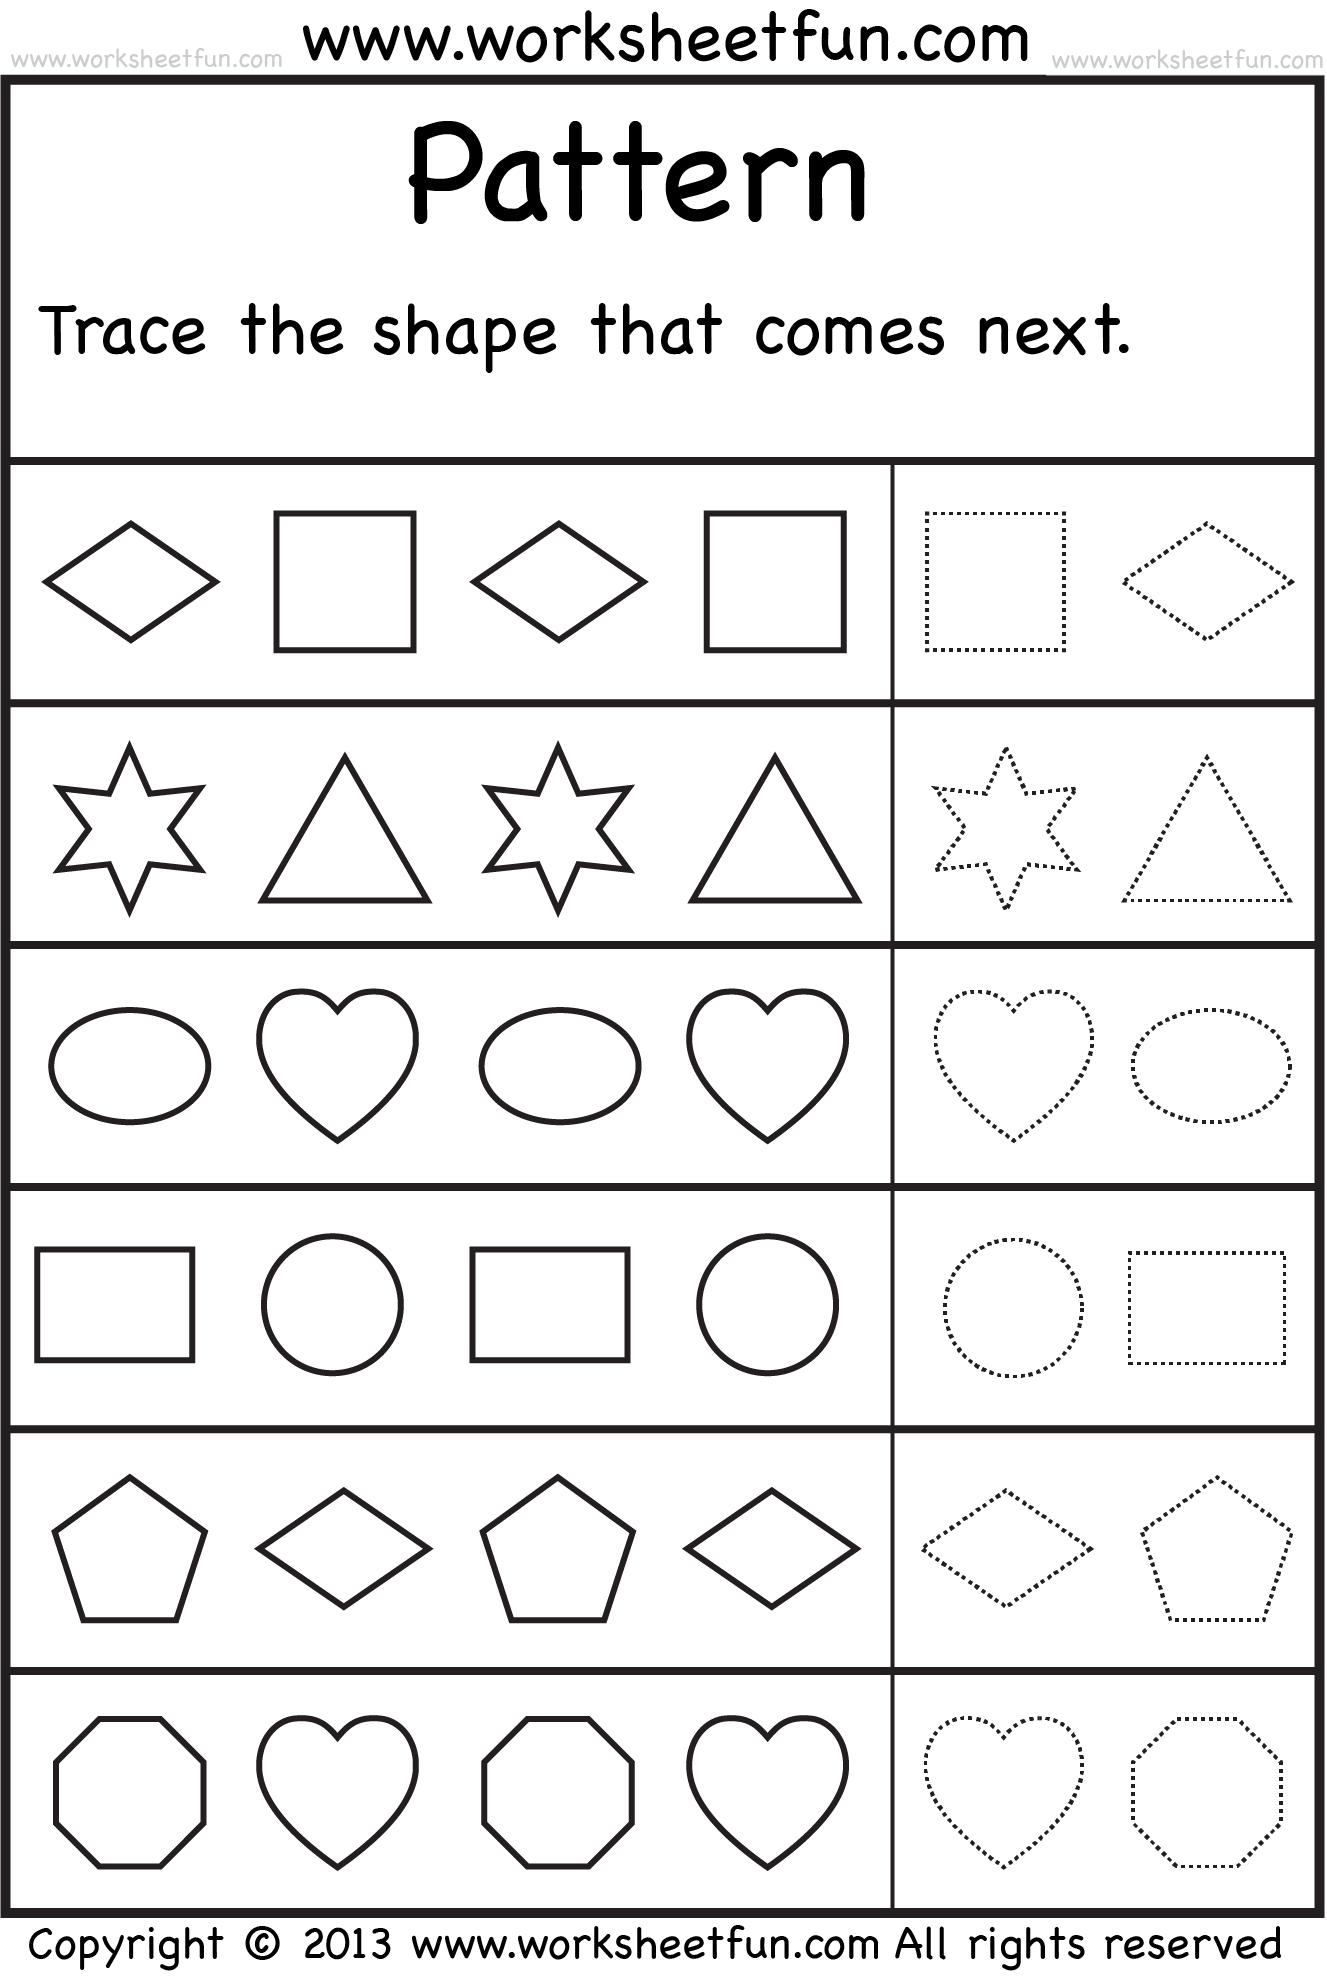 Shape Patterns Trace The Shape That Comes Next One